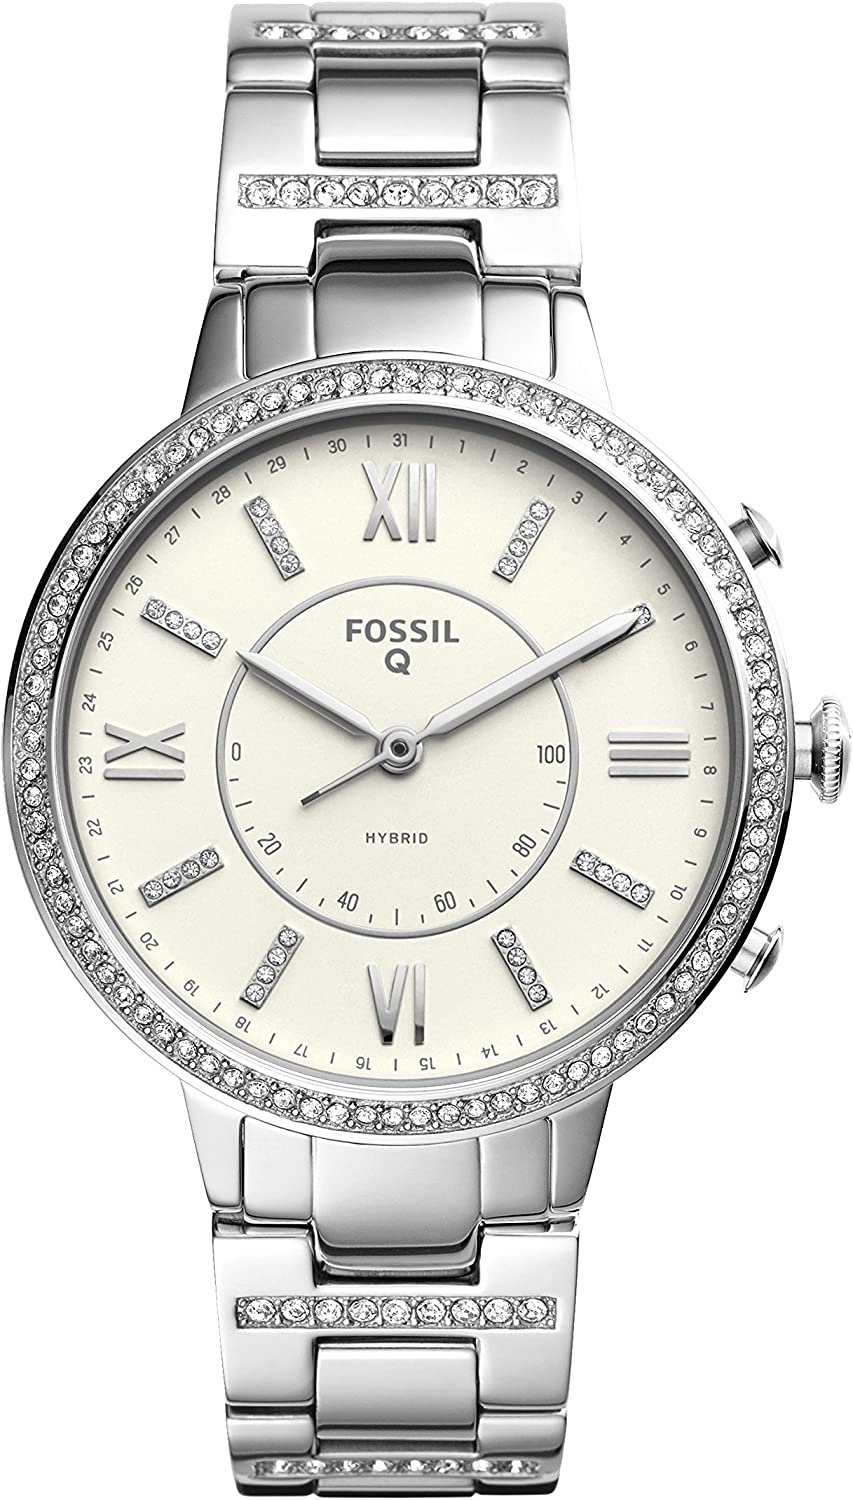 B076B8PWSQ Fossil Women's Virginia Stainless Steel Hybrid Smartwatch 81GlpOugYXL